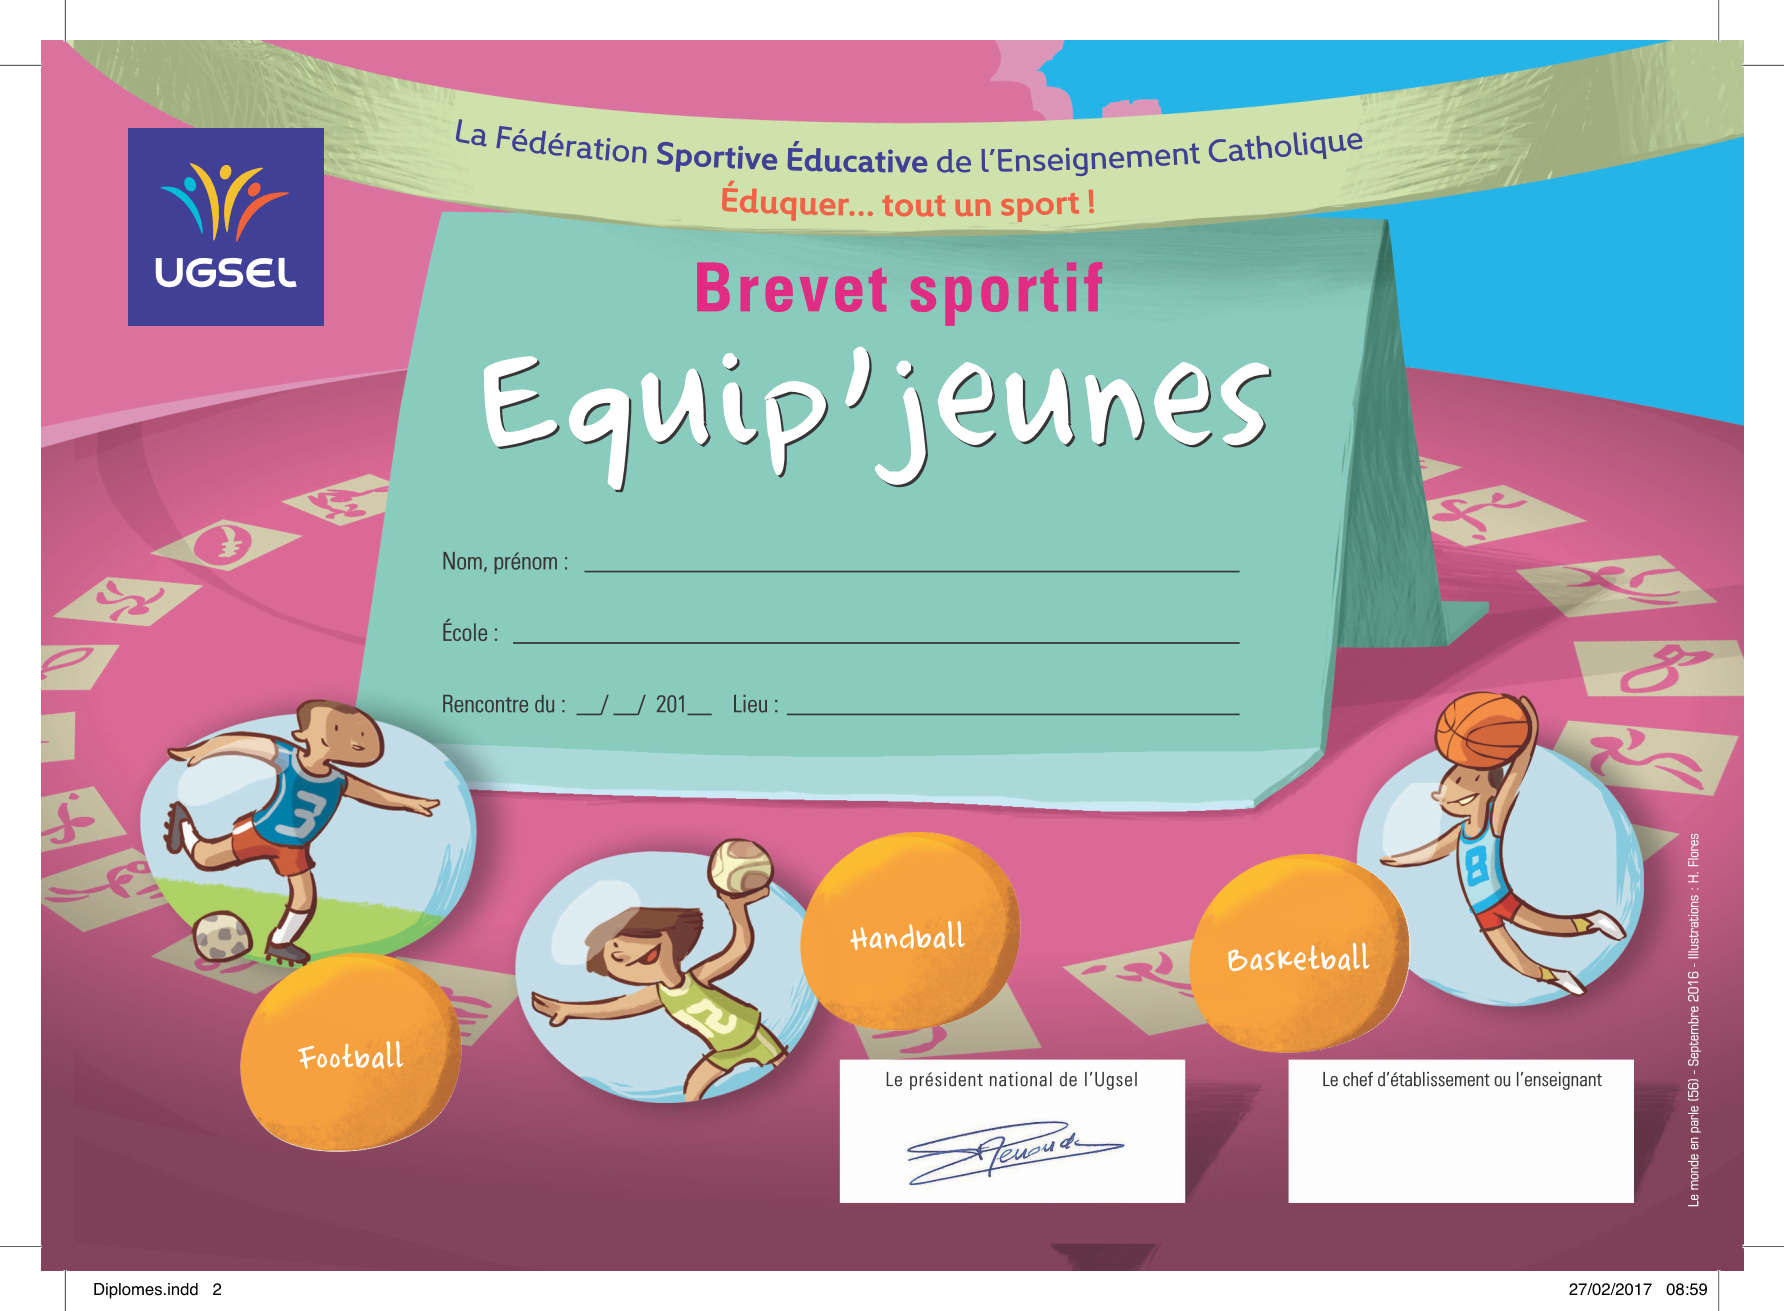 Equip_jeunes_Page_1.png